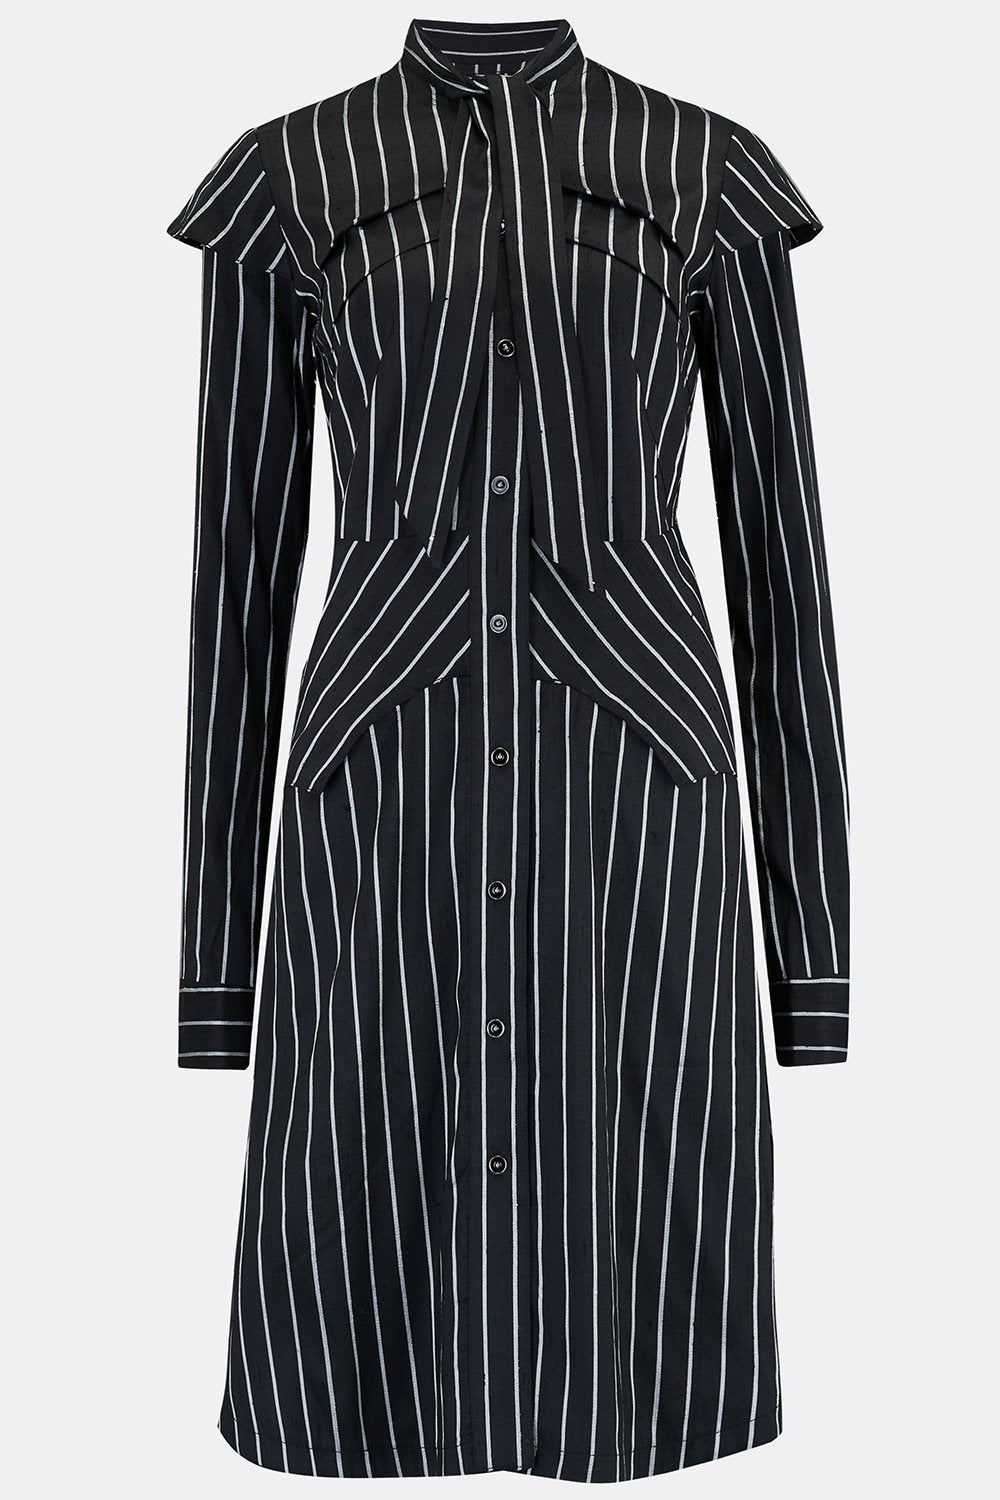 ARMOUR DRESS IN BLACK SILVER STRIPE SILK-womenswear-A Child Of The Jago